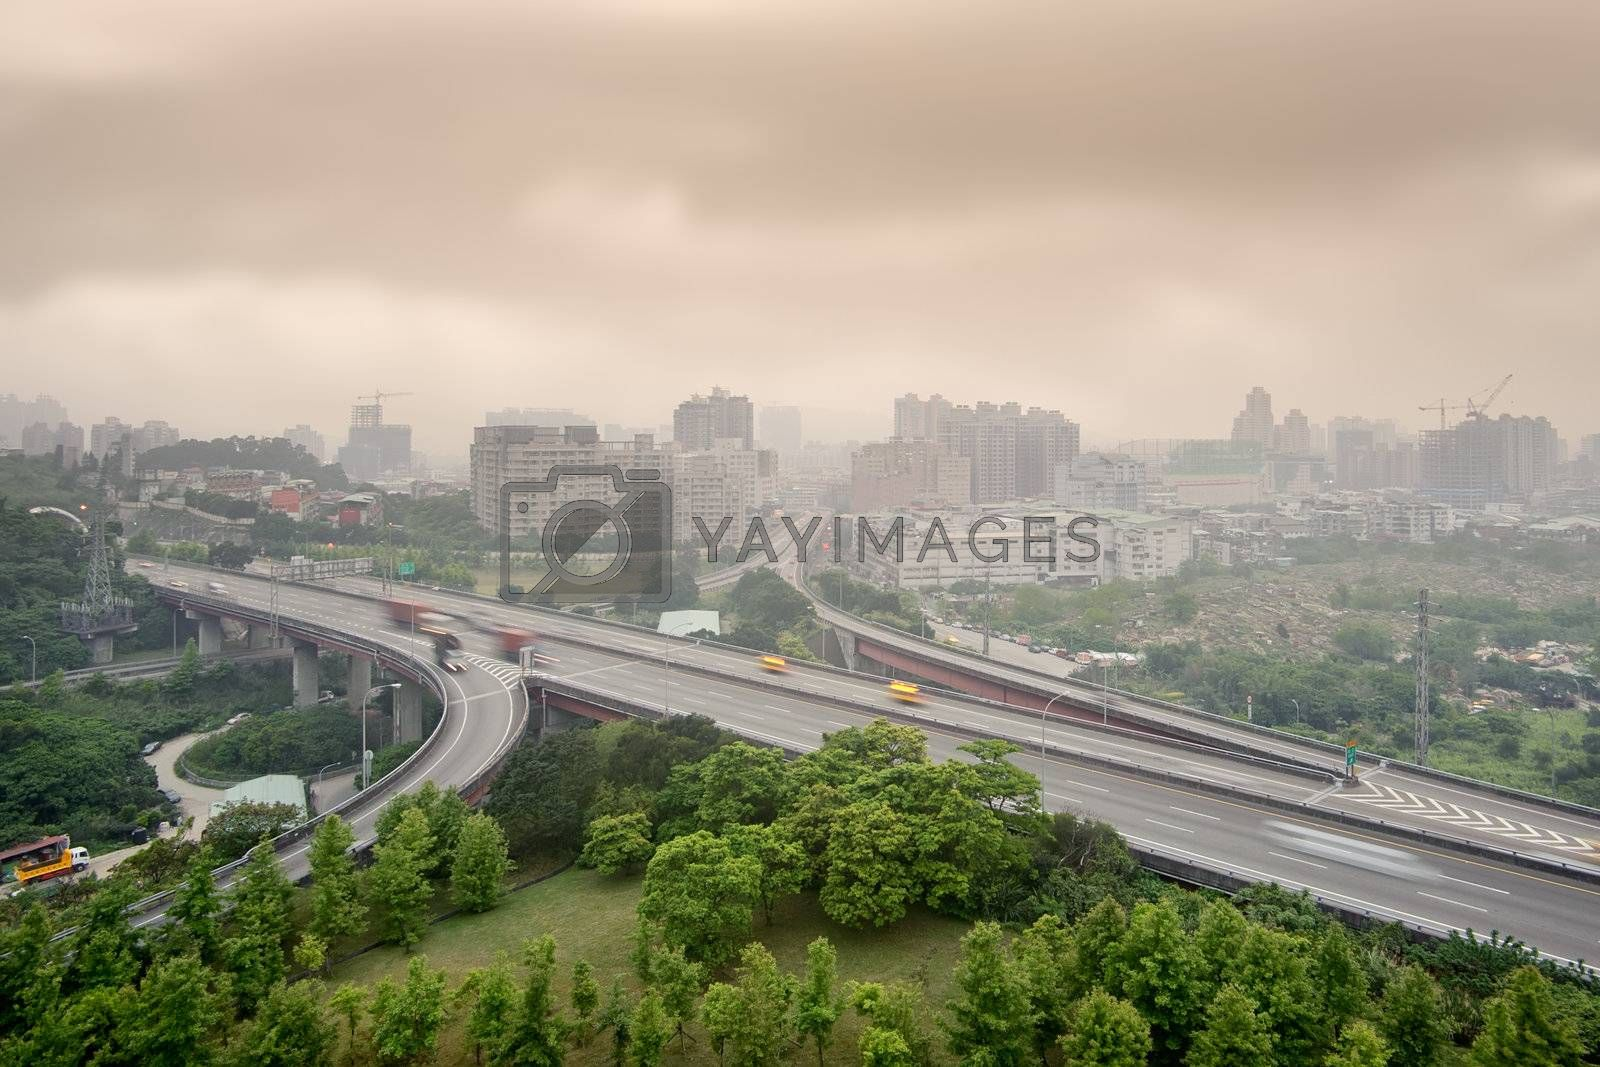 Sunset cityscape of highway and buildings with bad weather and air pollution, city scenery in Taipei, Taiwan.